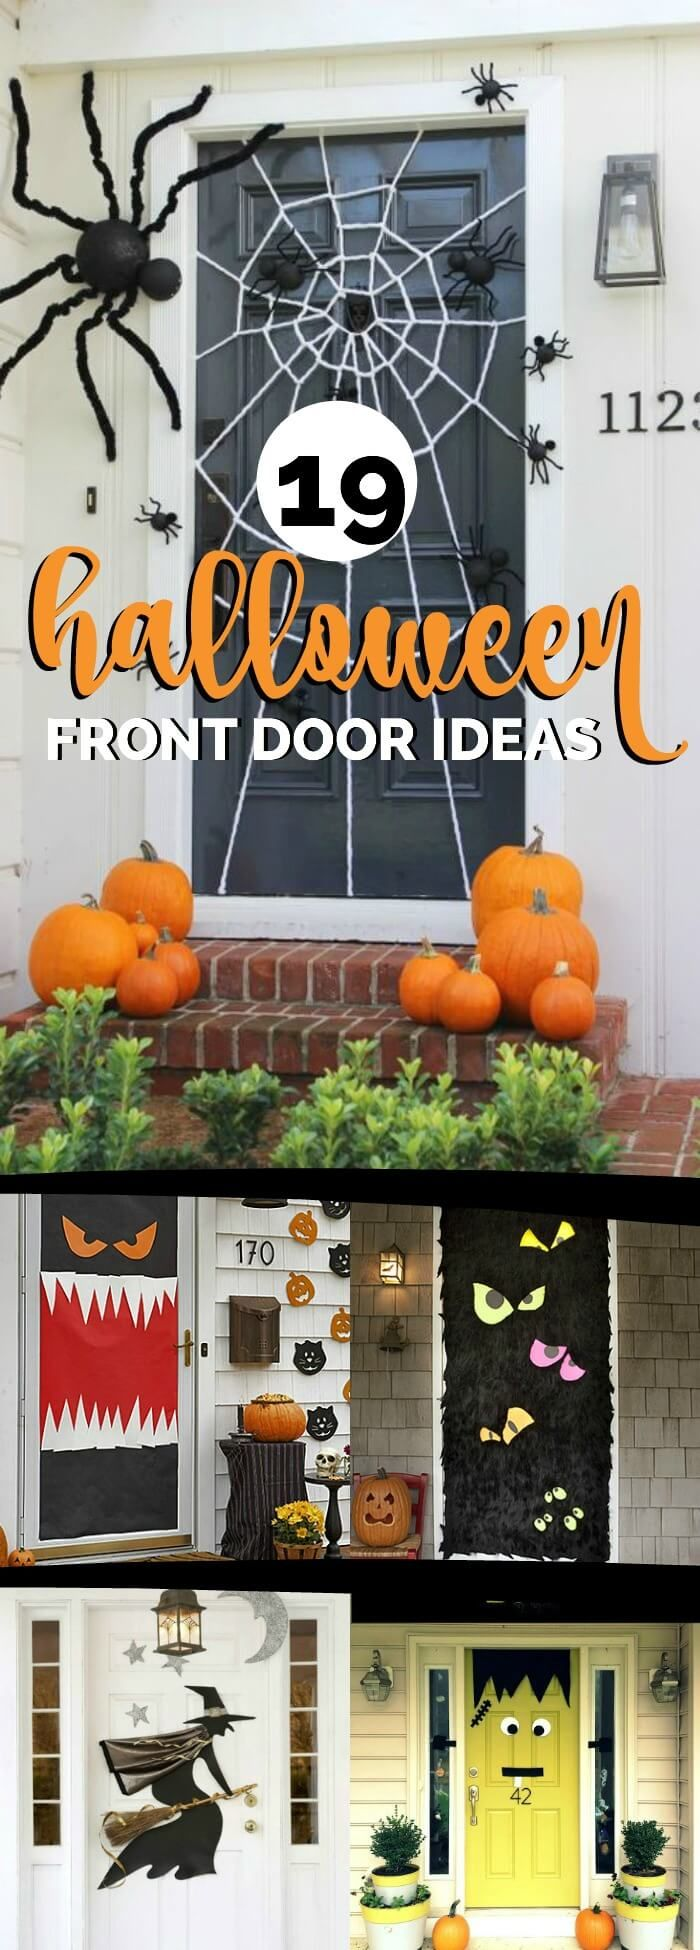 Halloween dorm door decorations - 19 Halloween Door Decorating Ideas That Are Hauntingly Awesome